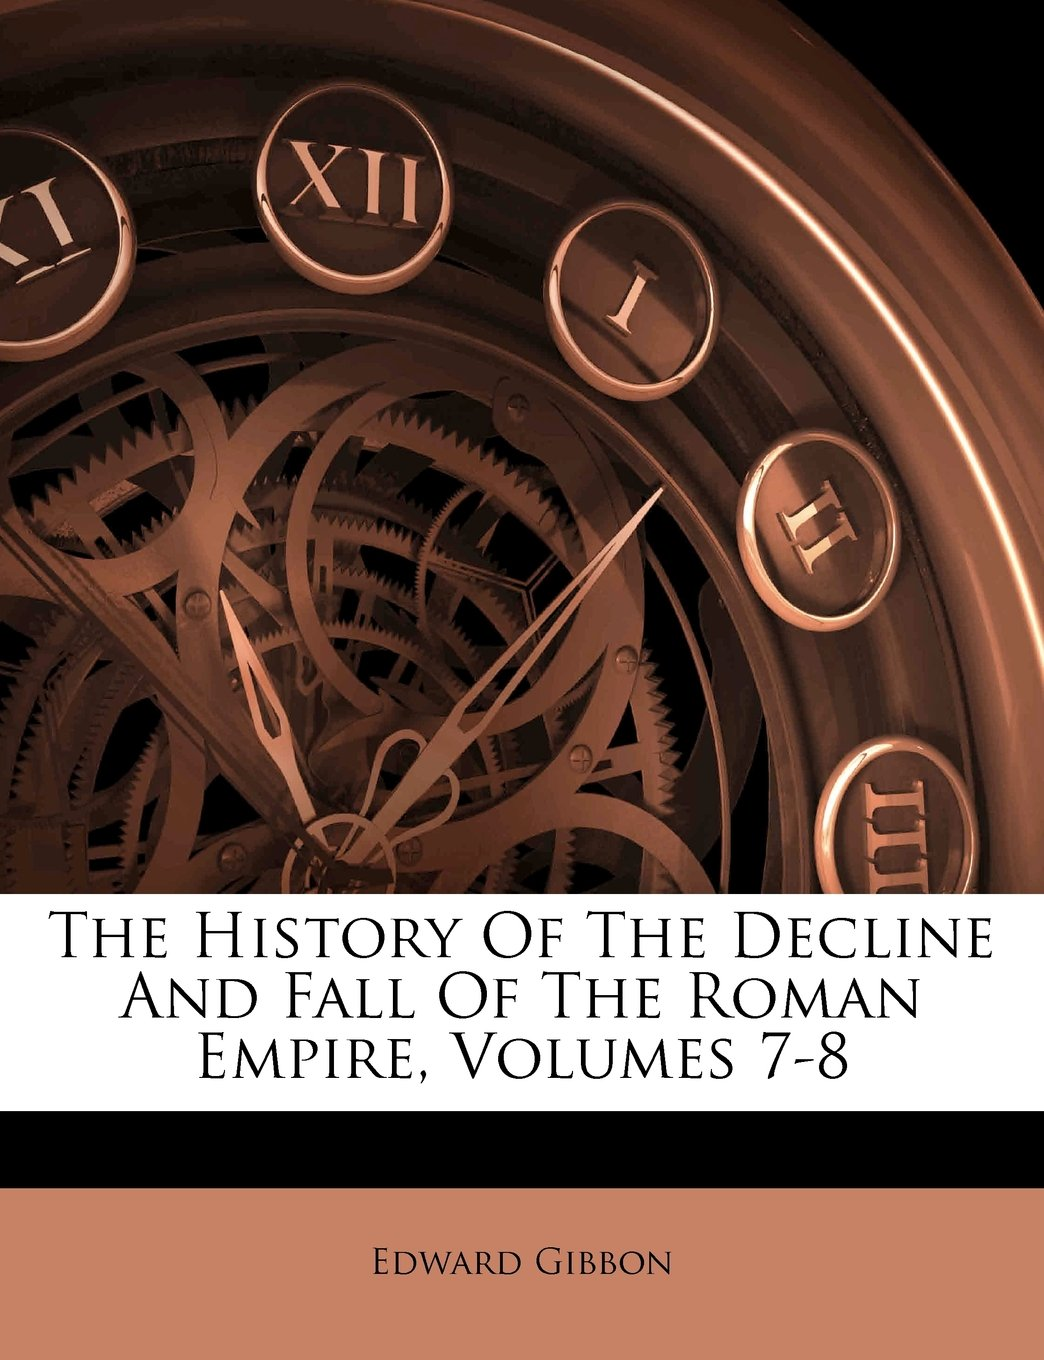 Download The History Of The Decline And Fall Of The Roman Empire, Volumes 7-8 (Afrikaans Edition) ebook